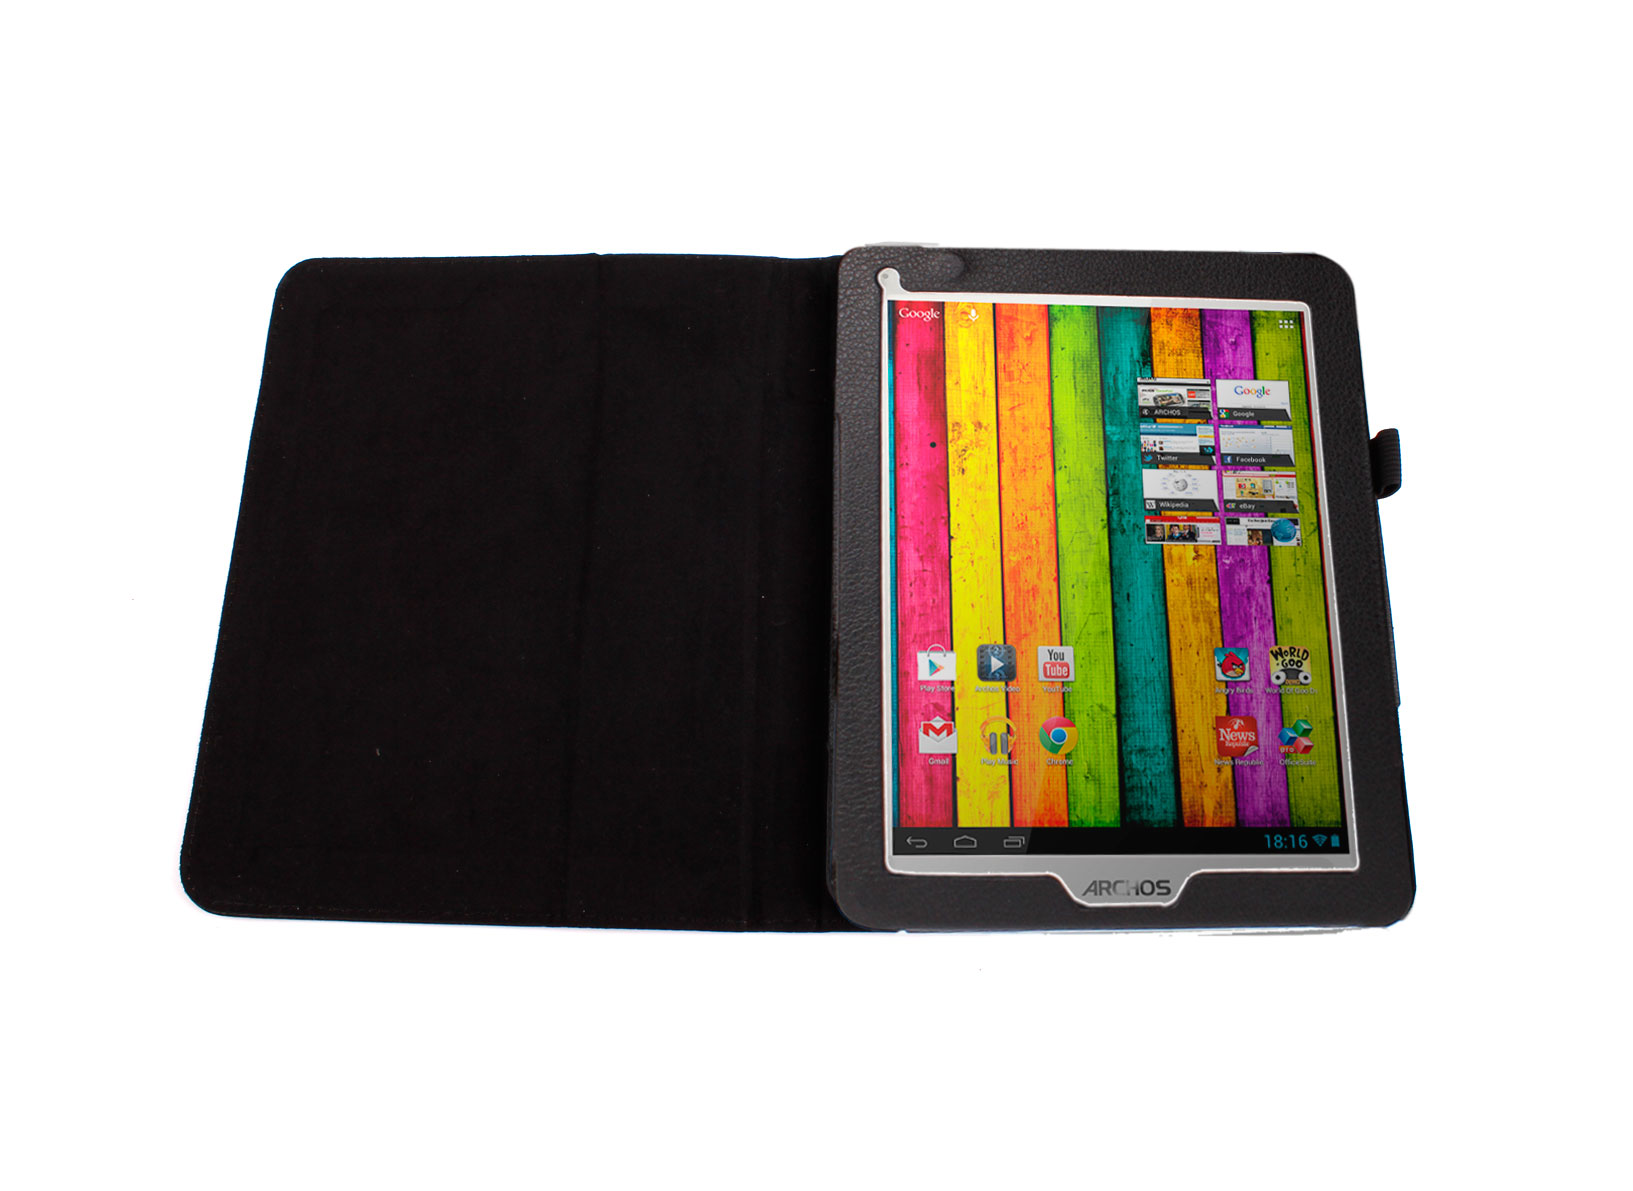 etui noir pour archos 80 titanium tablette tactile 8 pouces android 3g wifi ebay. Black Bedroom Furniture Sets. Home Design Ideas